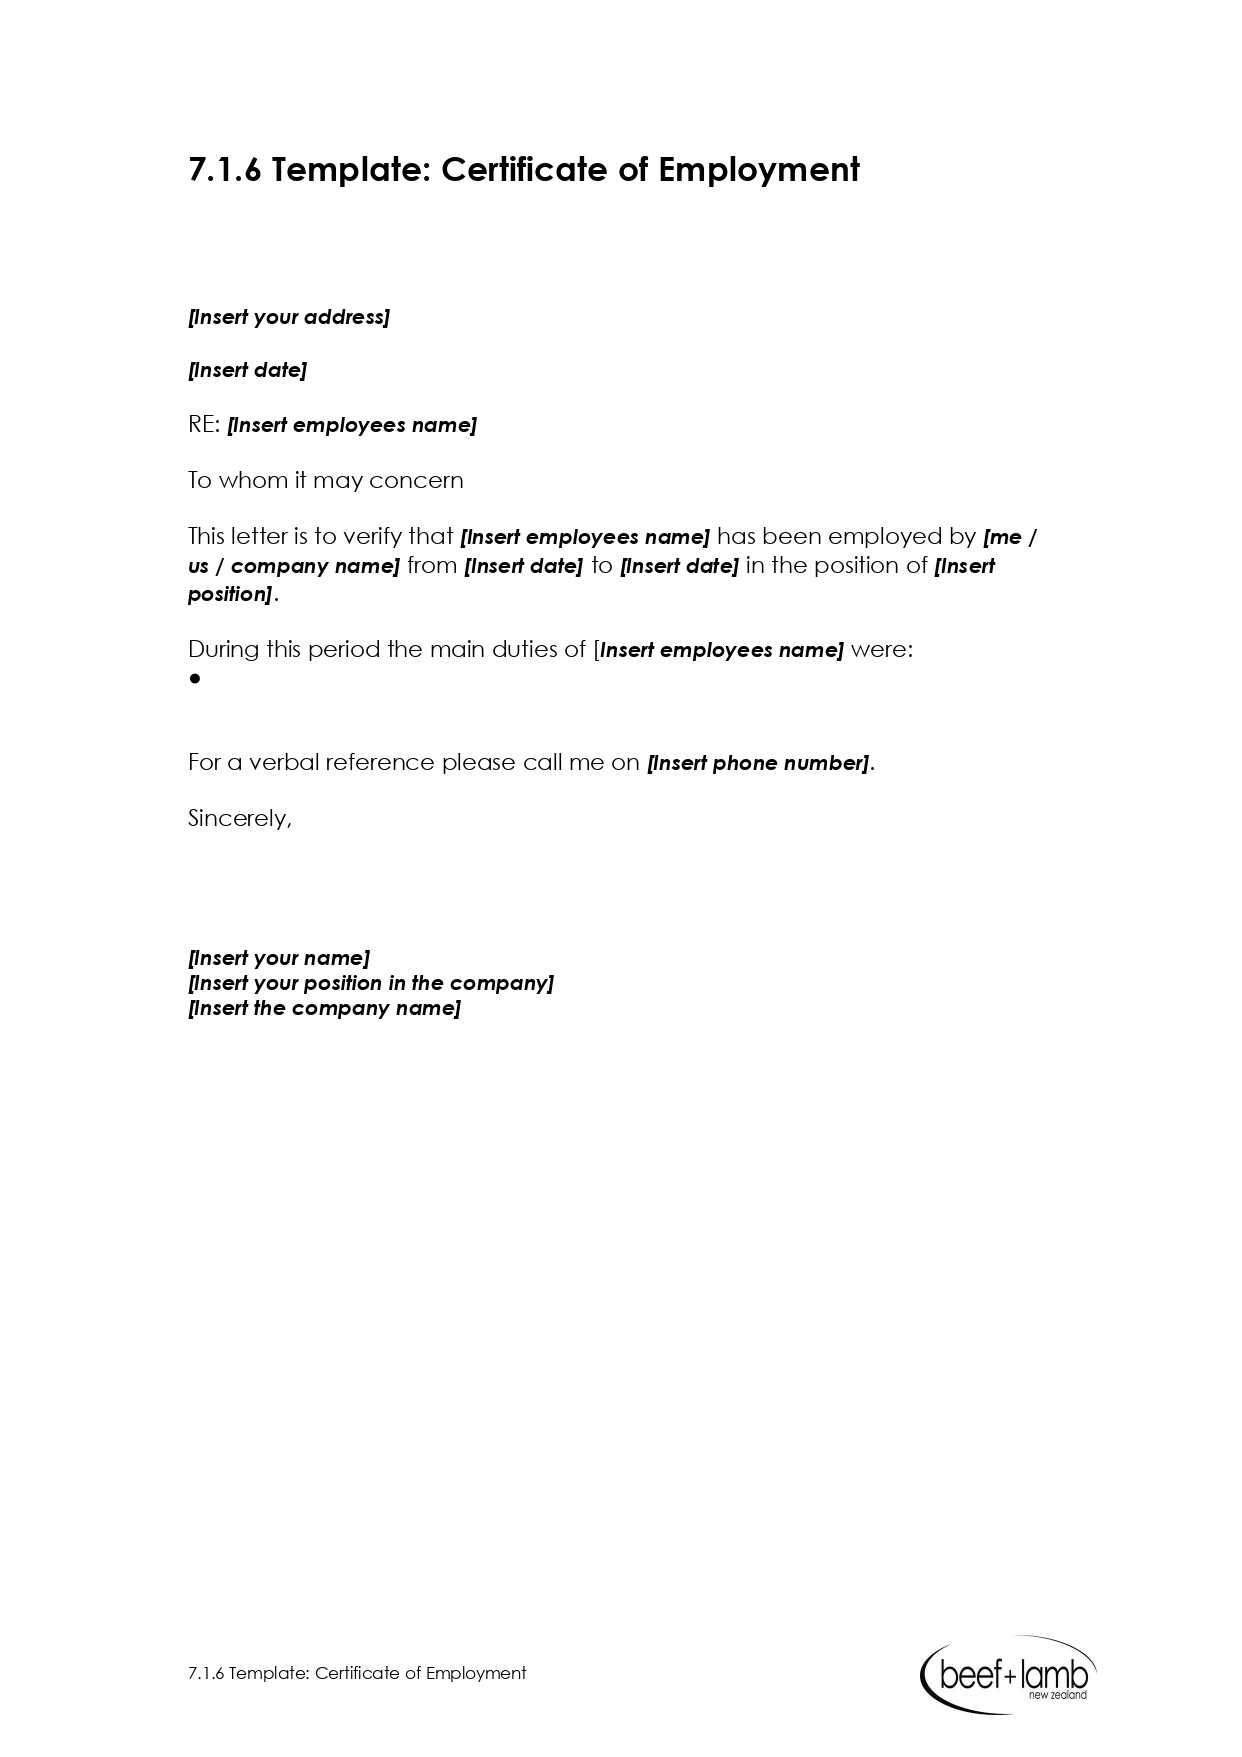 Editable Certificate Of Employment Template - Google Docs Intended For Sample Certificate Employment Template